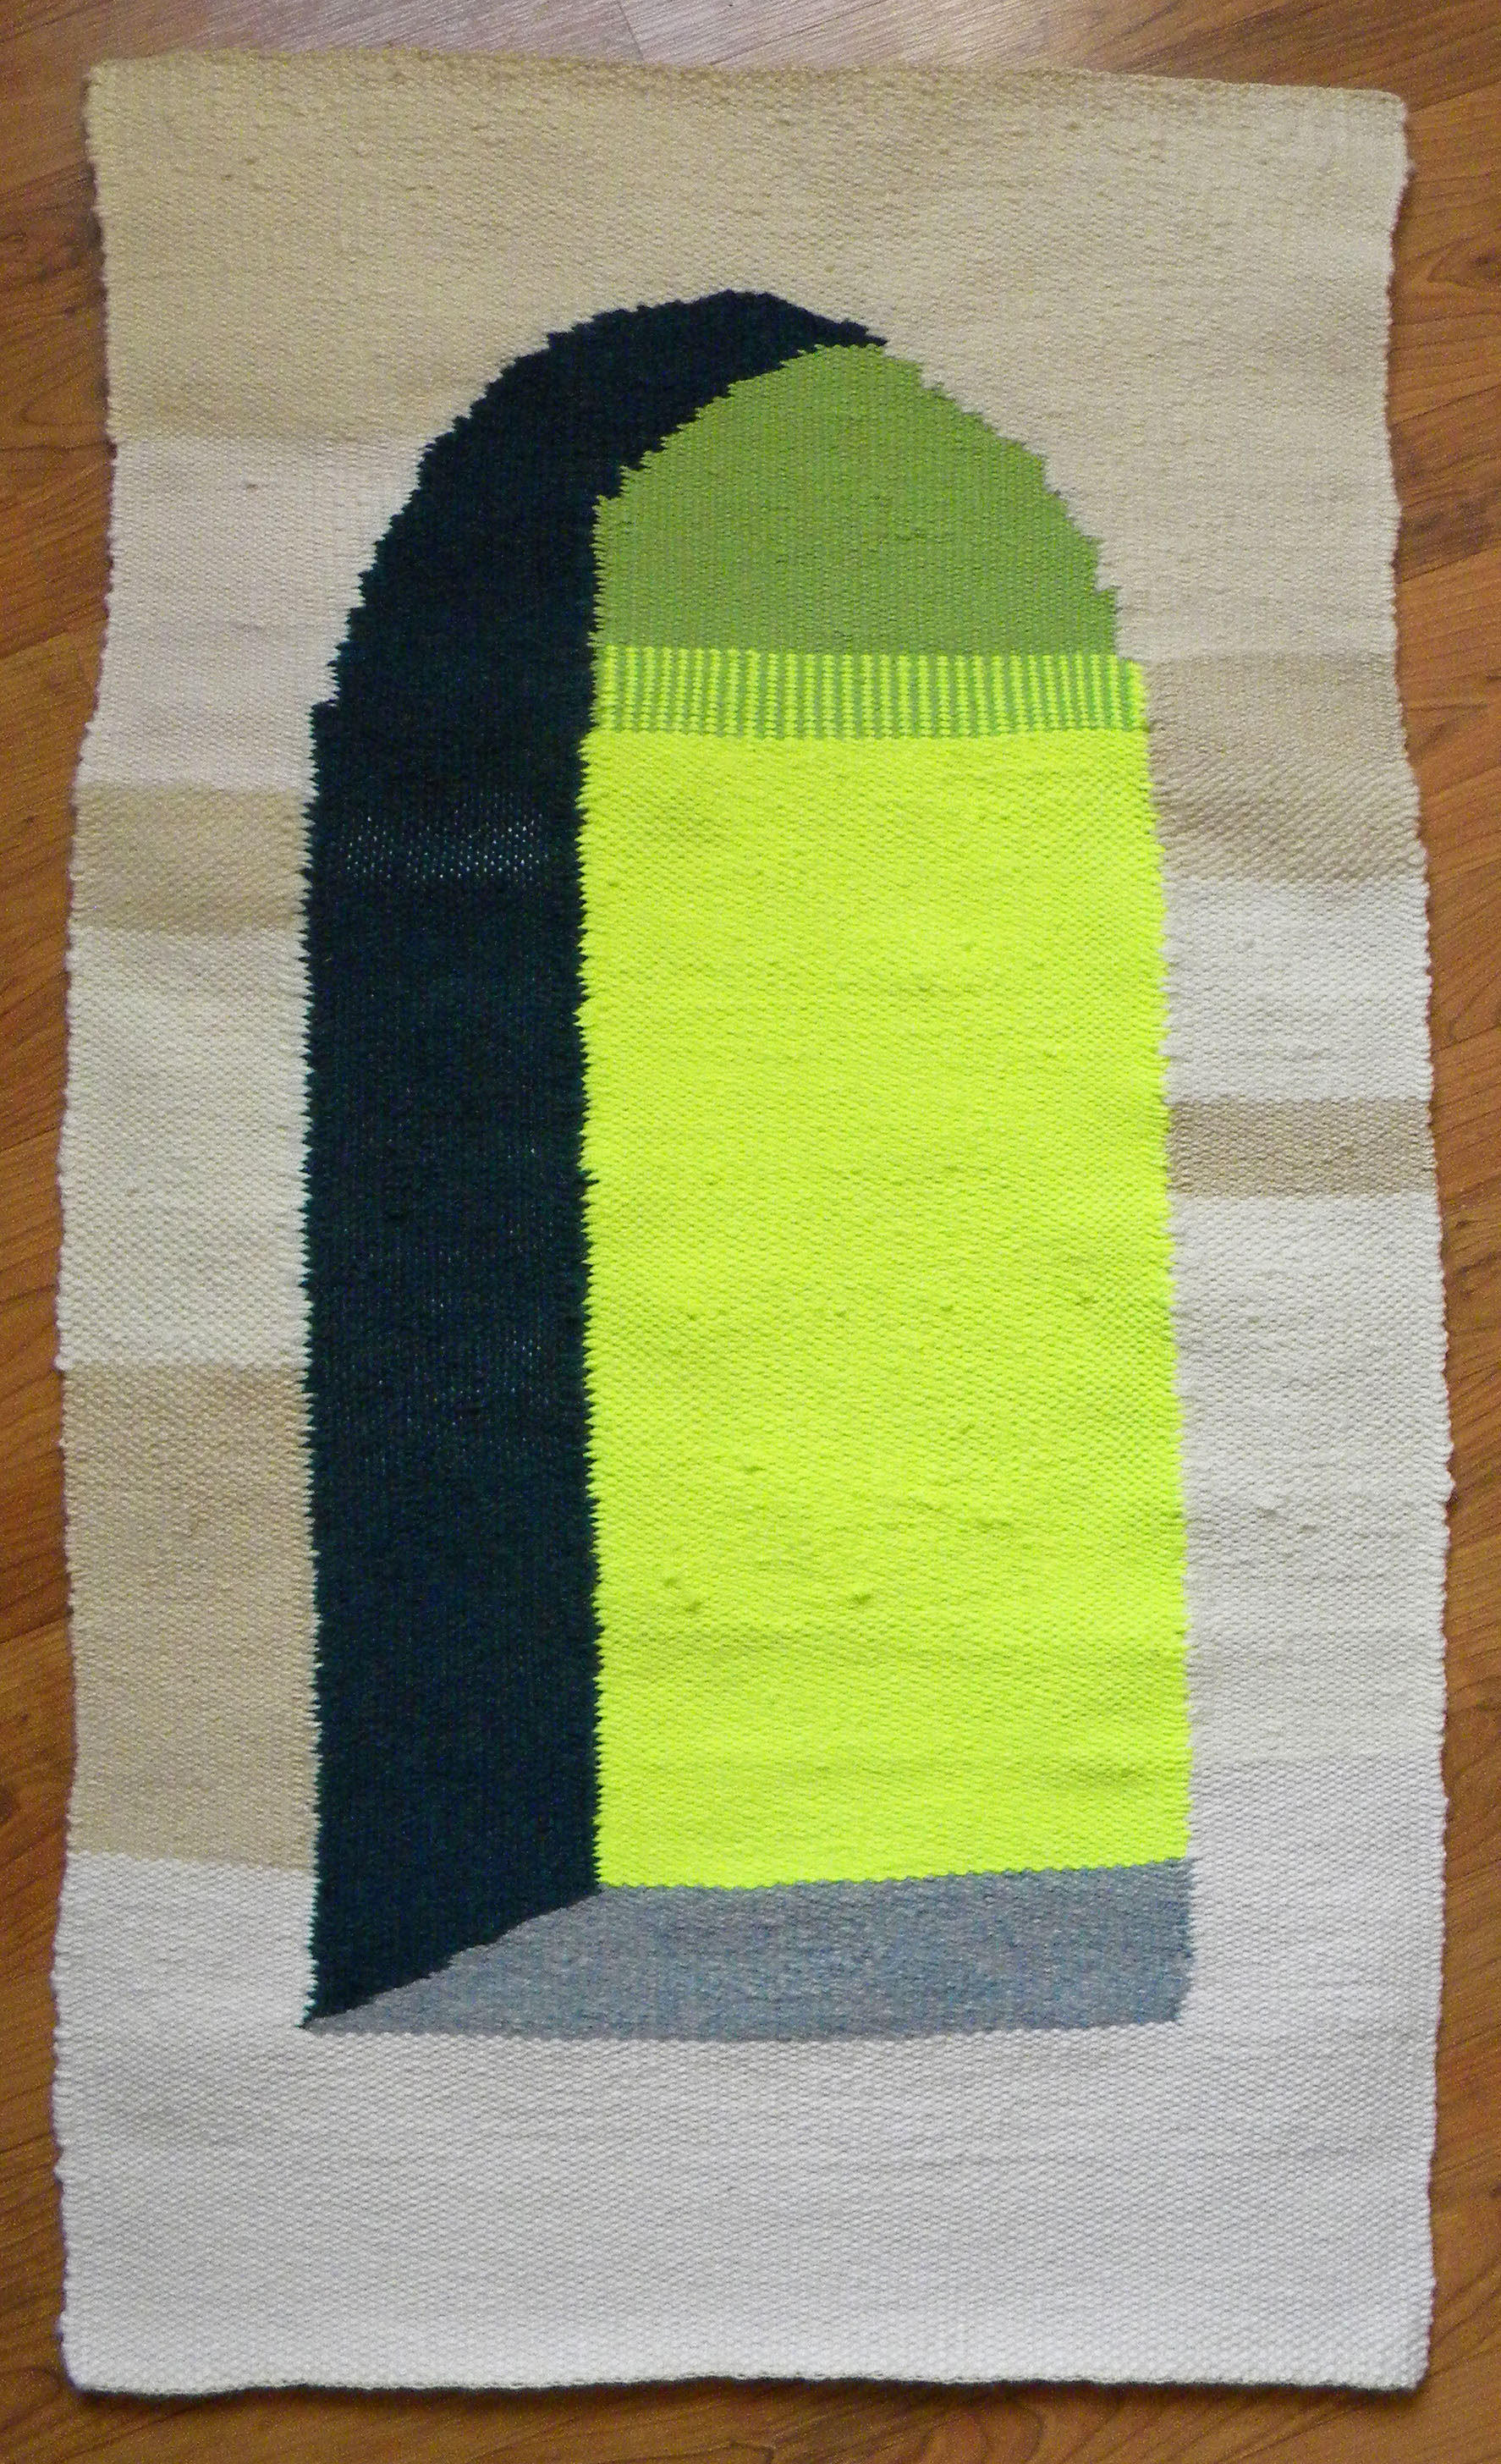 a yellow, green, and blue window, doorway, or arch; handwoven tapestry by Clare Nicholls